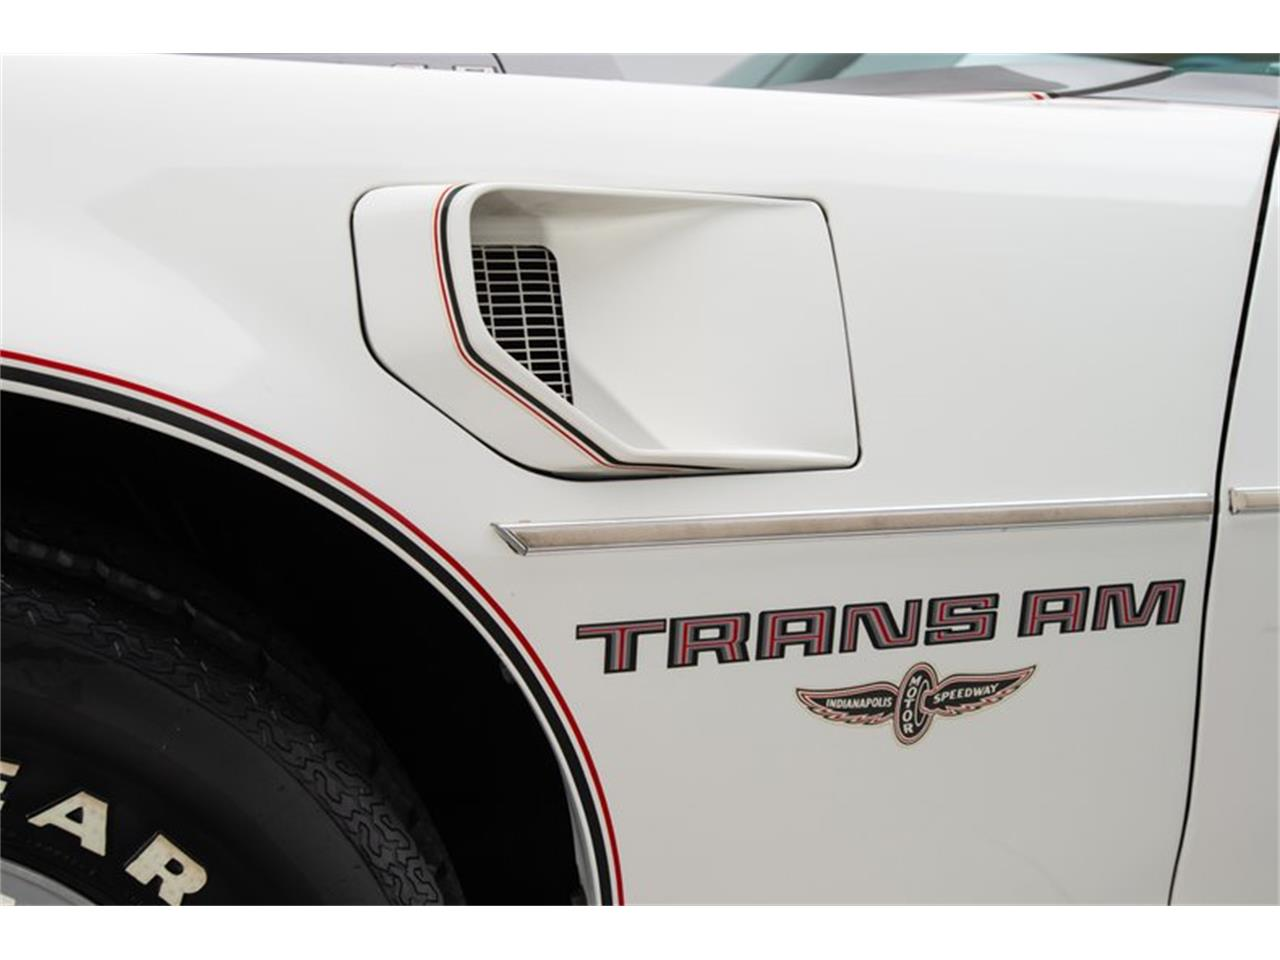 1980 Pontiac Firebird Trans Am Turbo Indy Pace Car Edition for sale in Charlotte, NC – photo 12